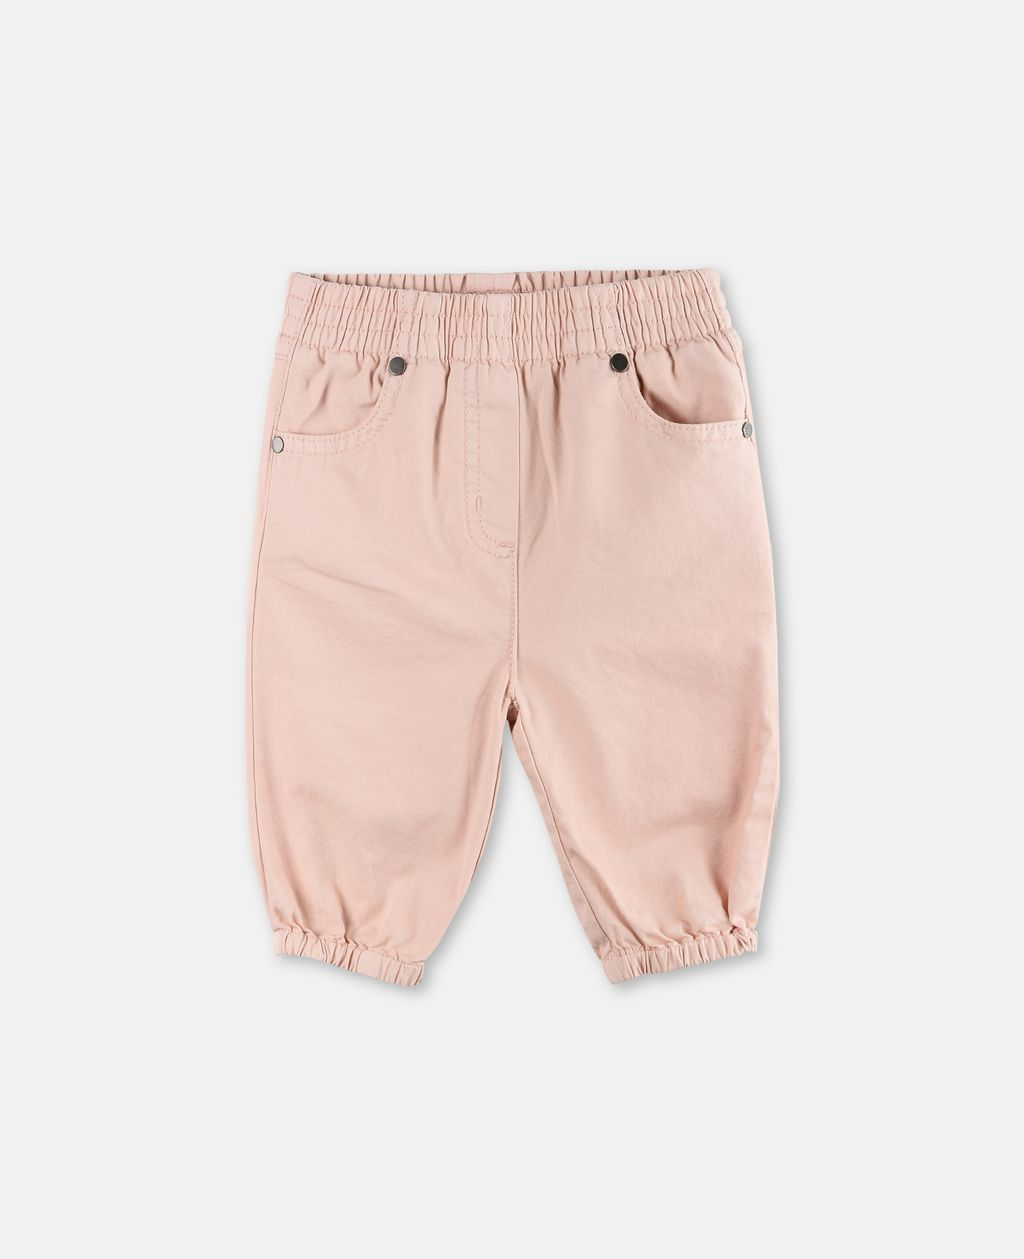 Pipkin Shells Pants